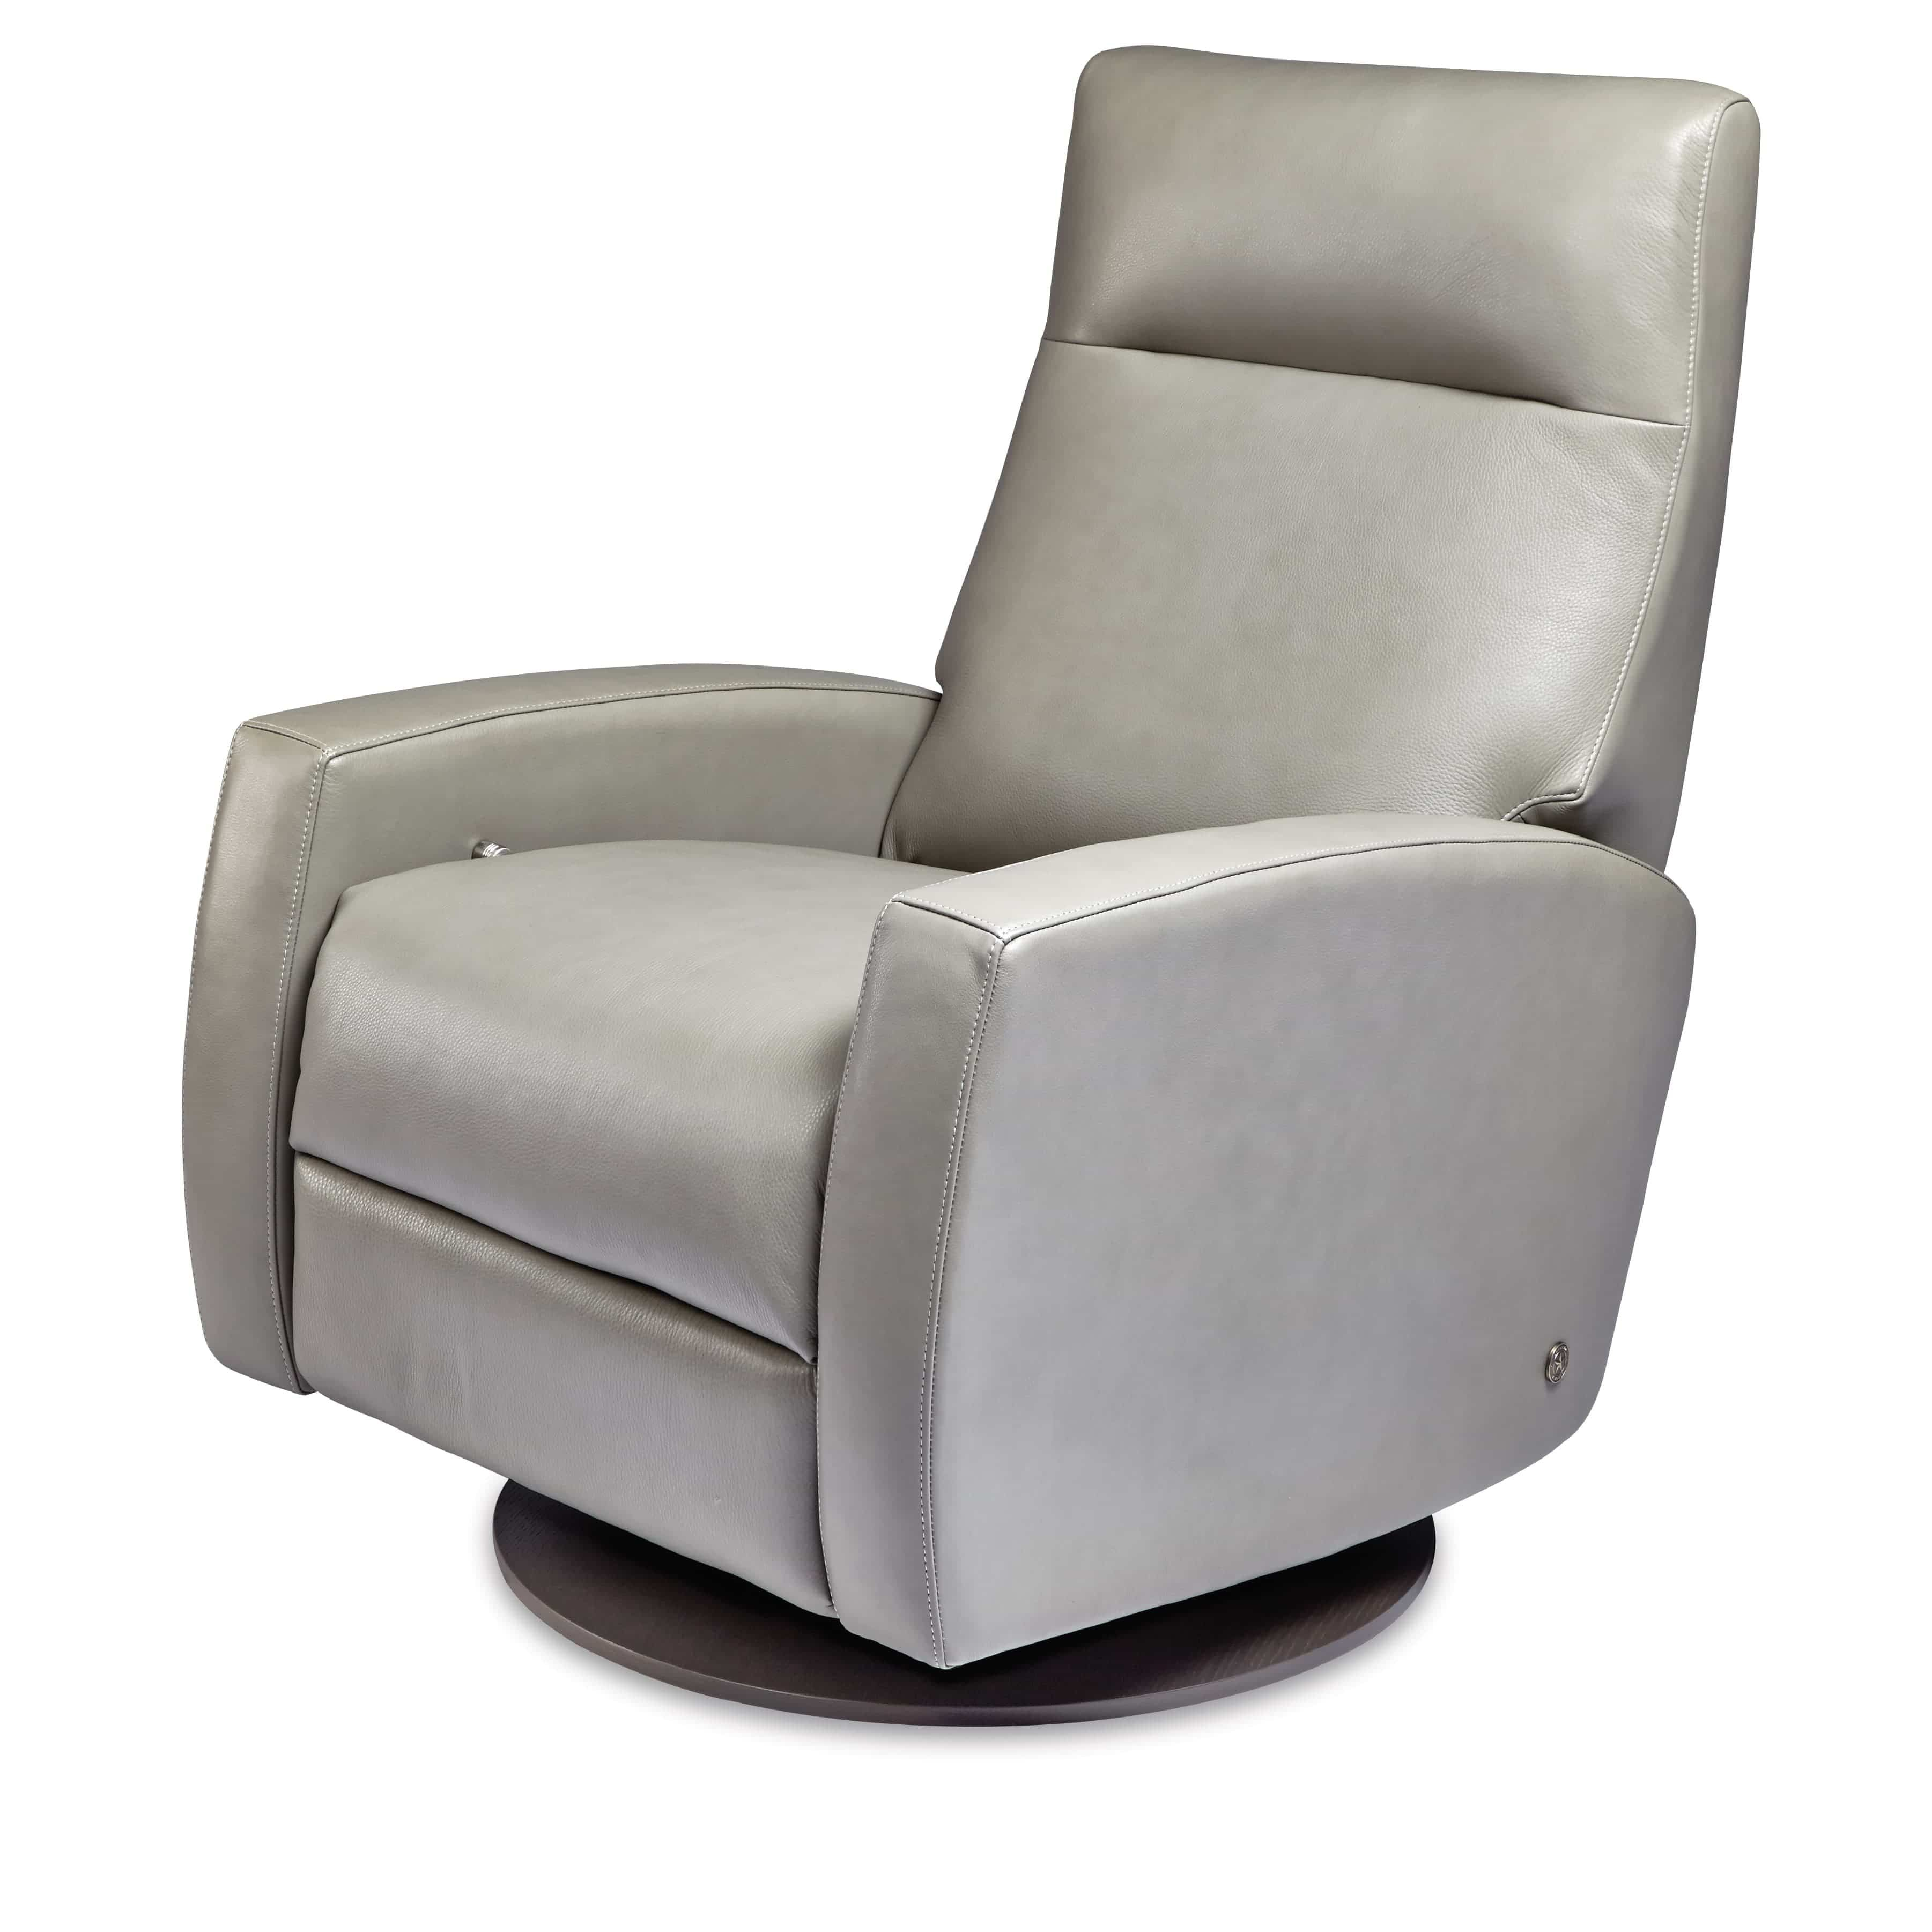 Divani Relaxer Chair Ada Eva Or Adley If They Have The Brown Distressed Leather That